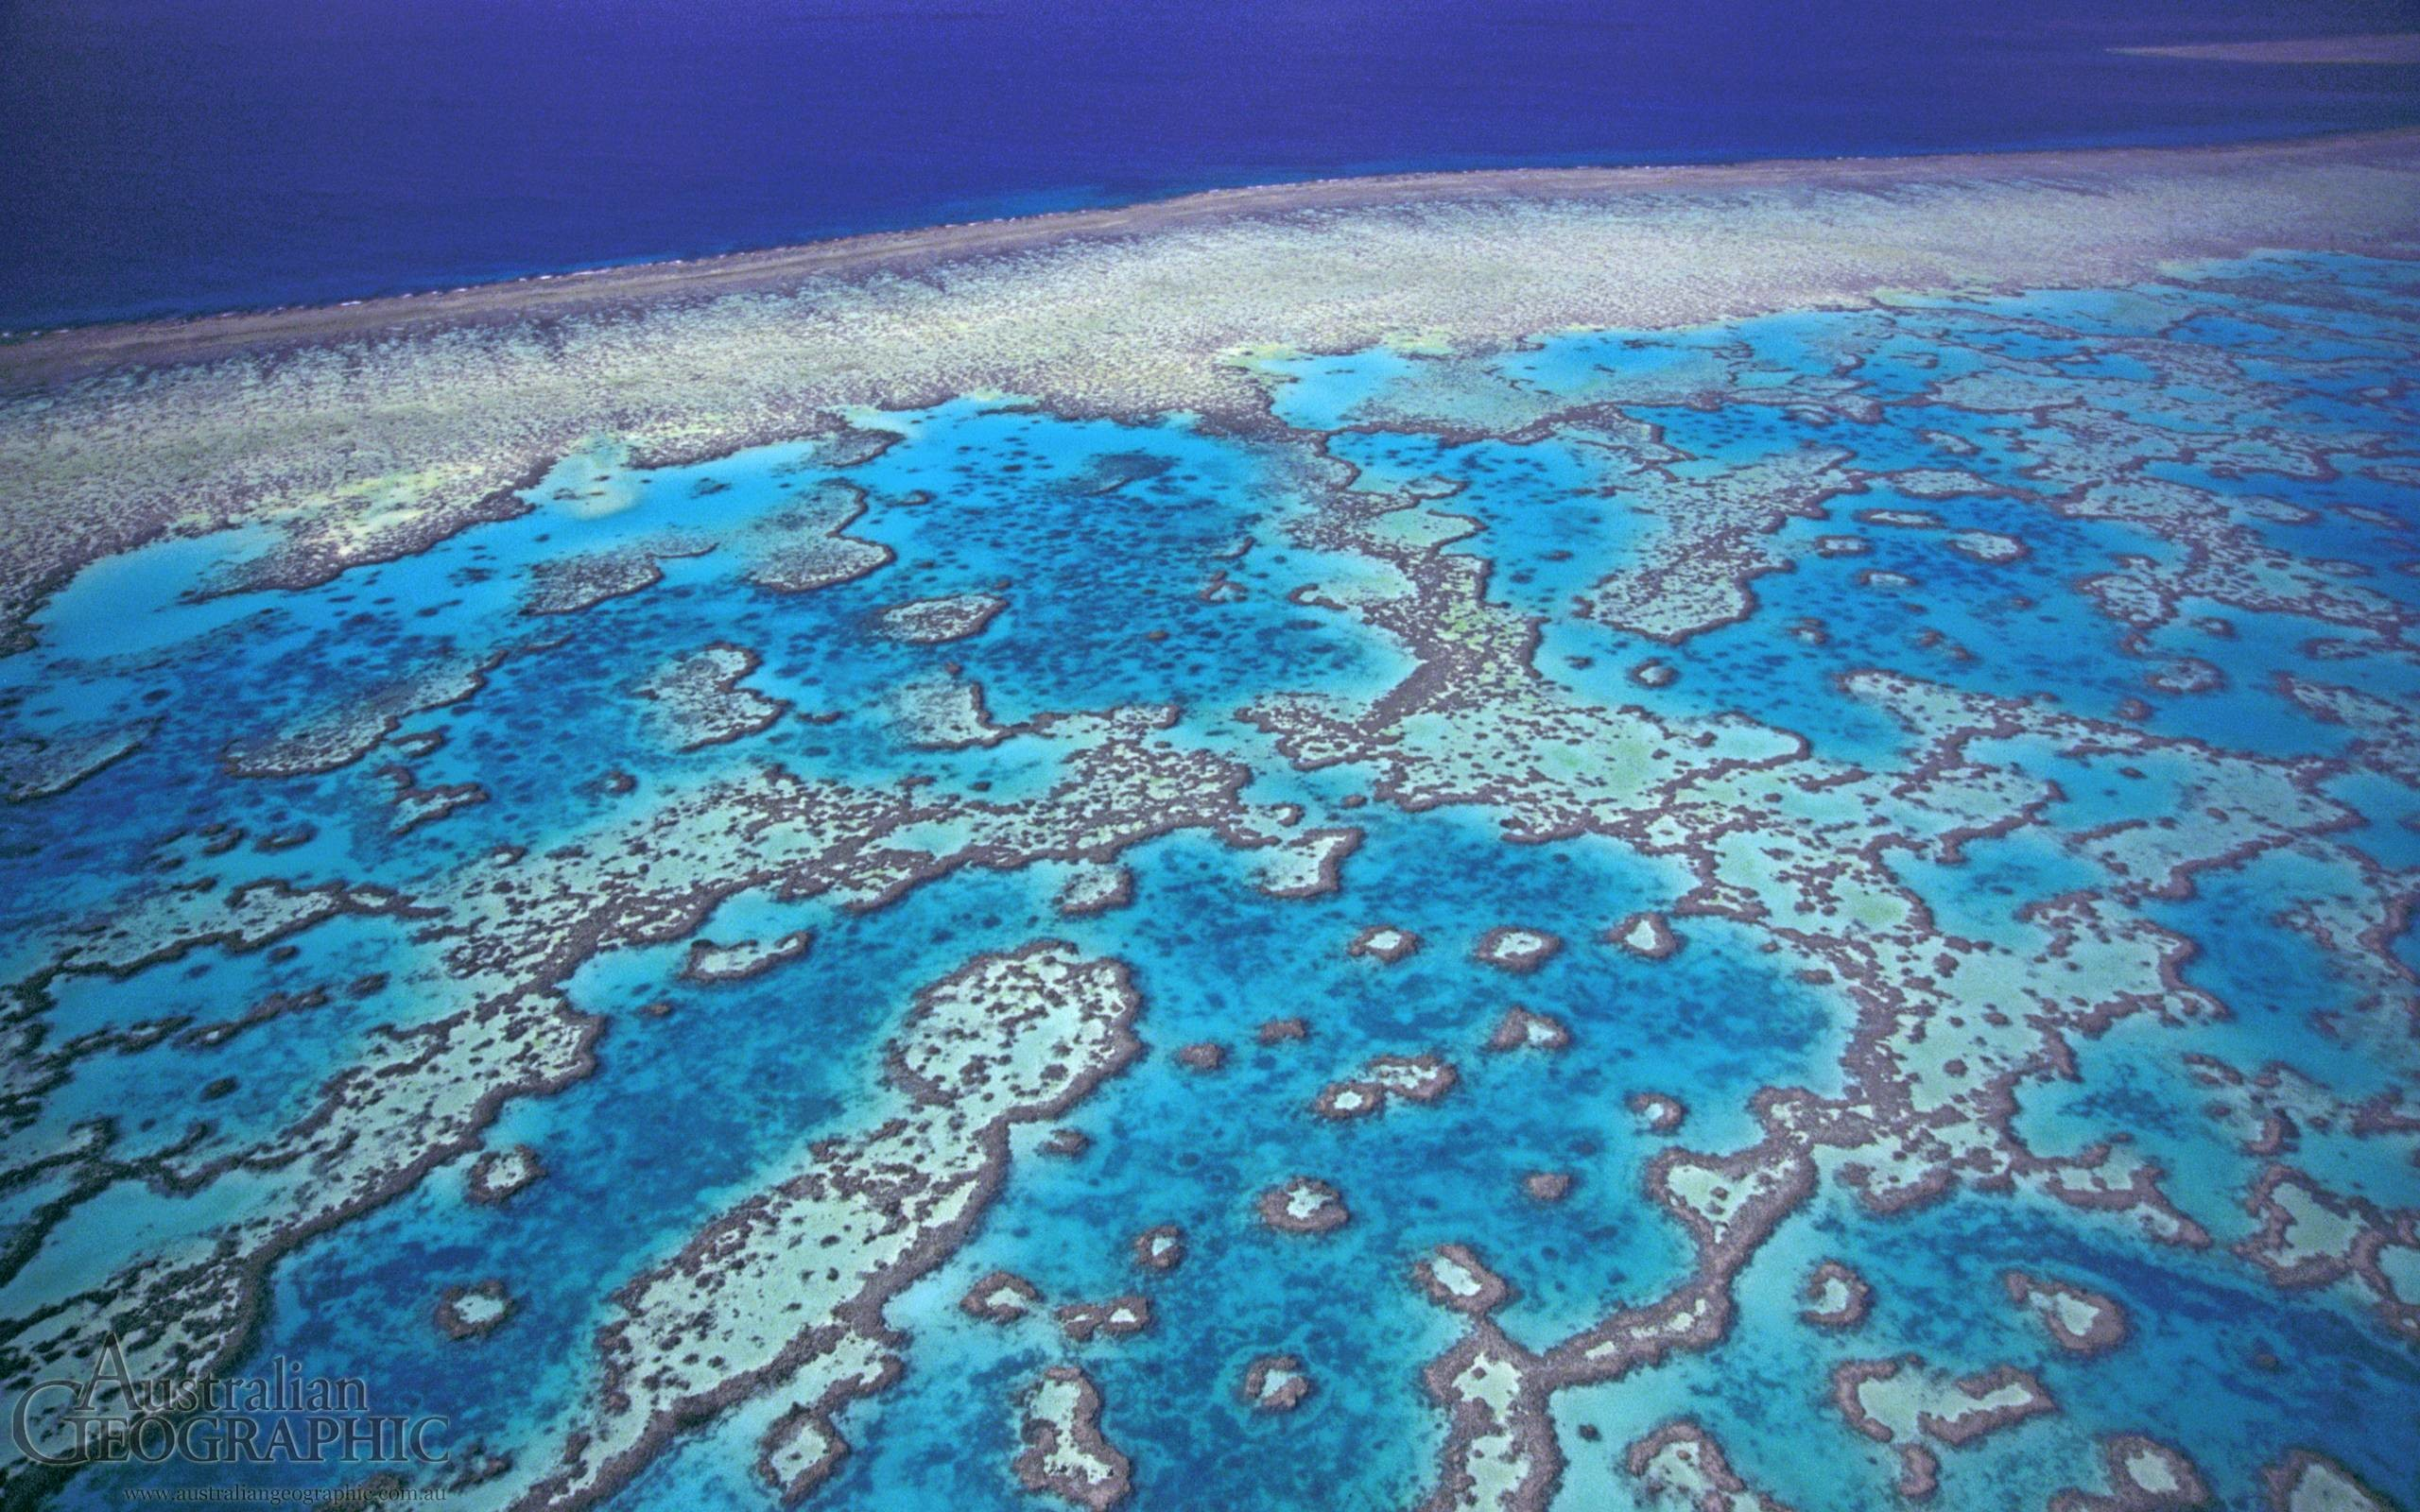 2560x1600 Great Barrier Reef Wallpaper 3 40902 Images HD Wallpapers .